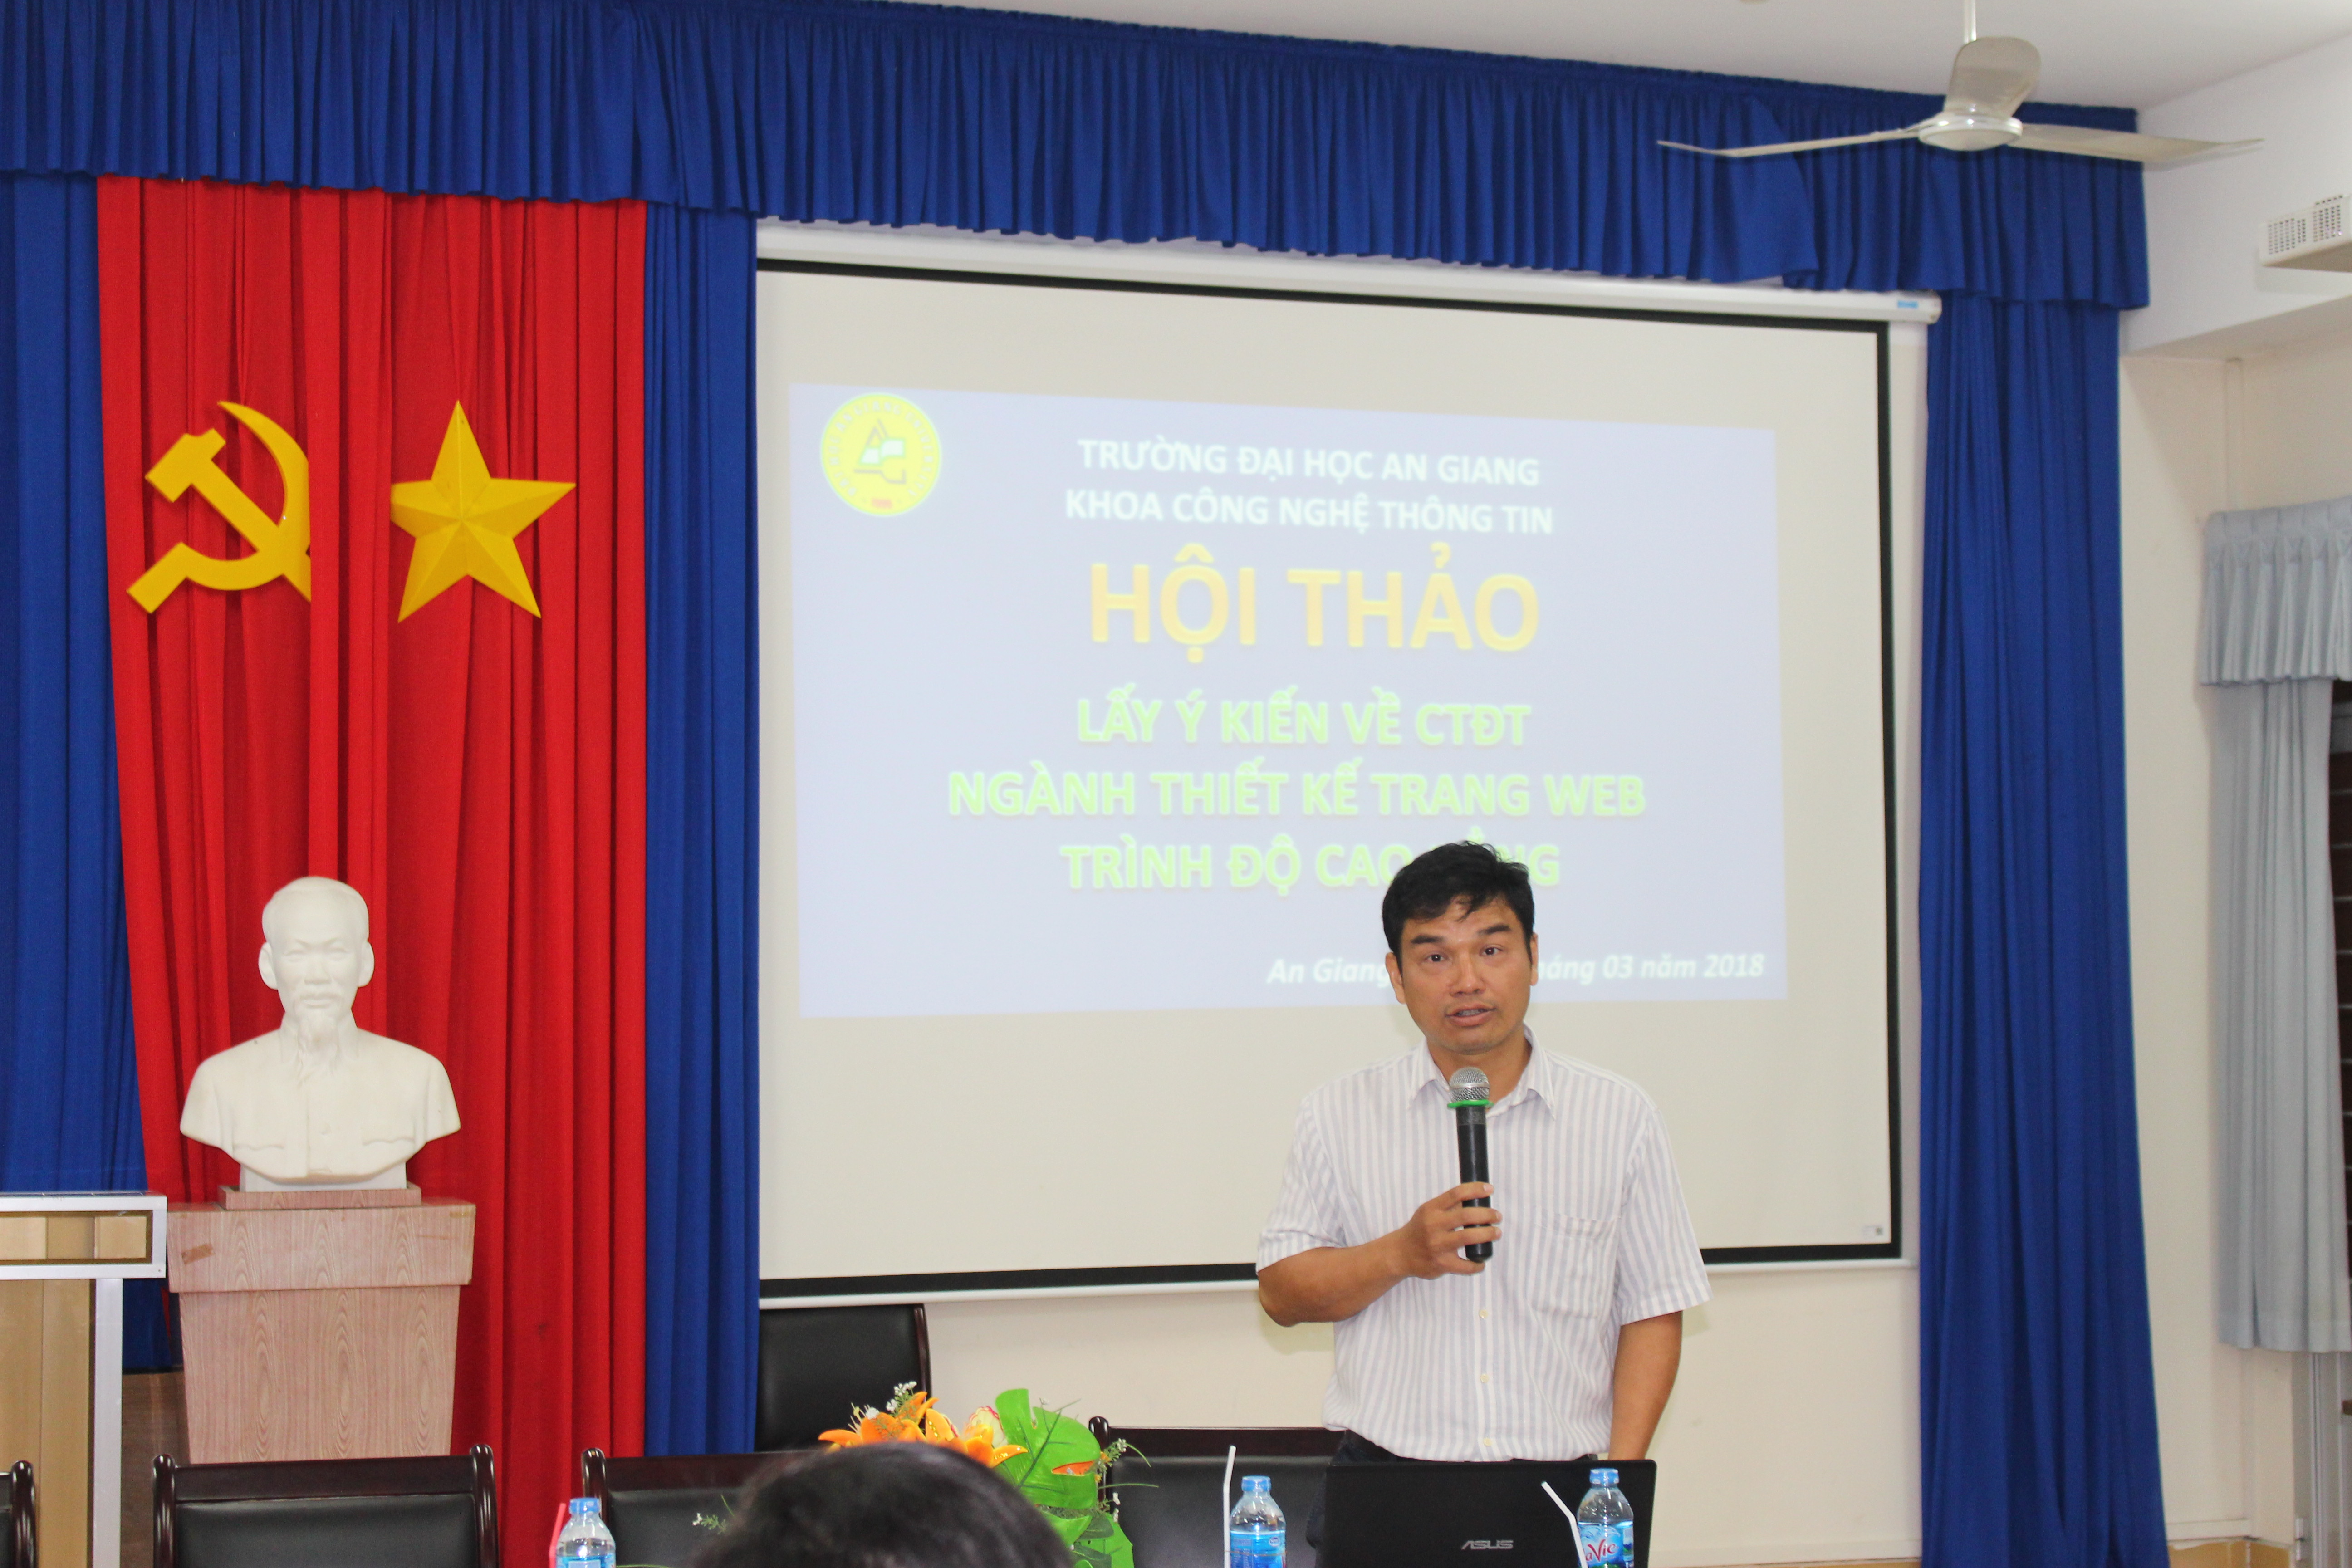 Dr. Doan Thanh Nghi – Dean of the Faculty of Information Technology shared his concluding remarks